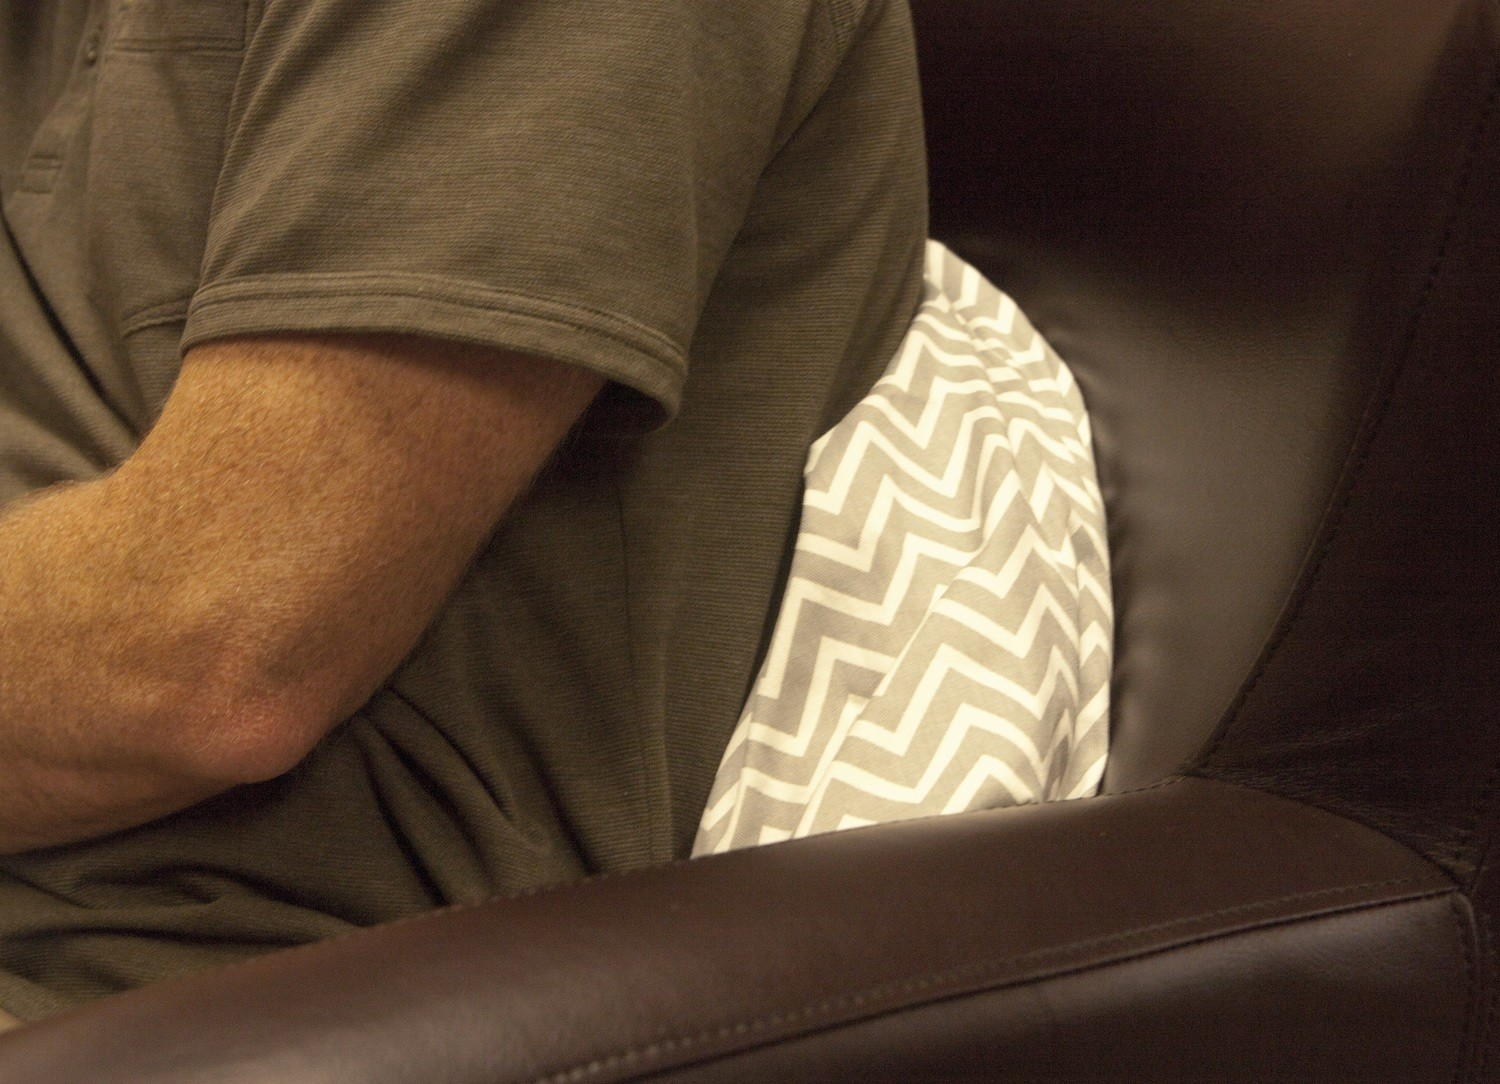 BOOKEND — Buckwheat Therapy Pillow for Neck and Back